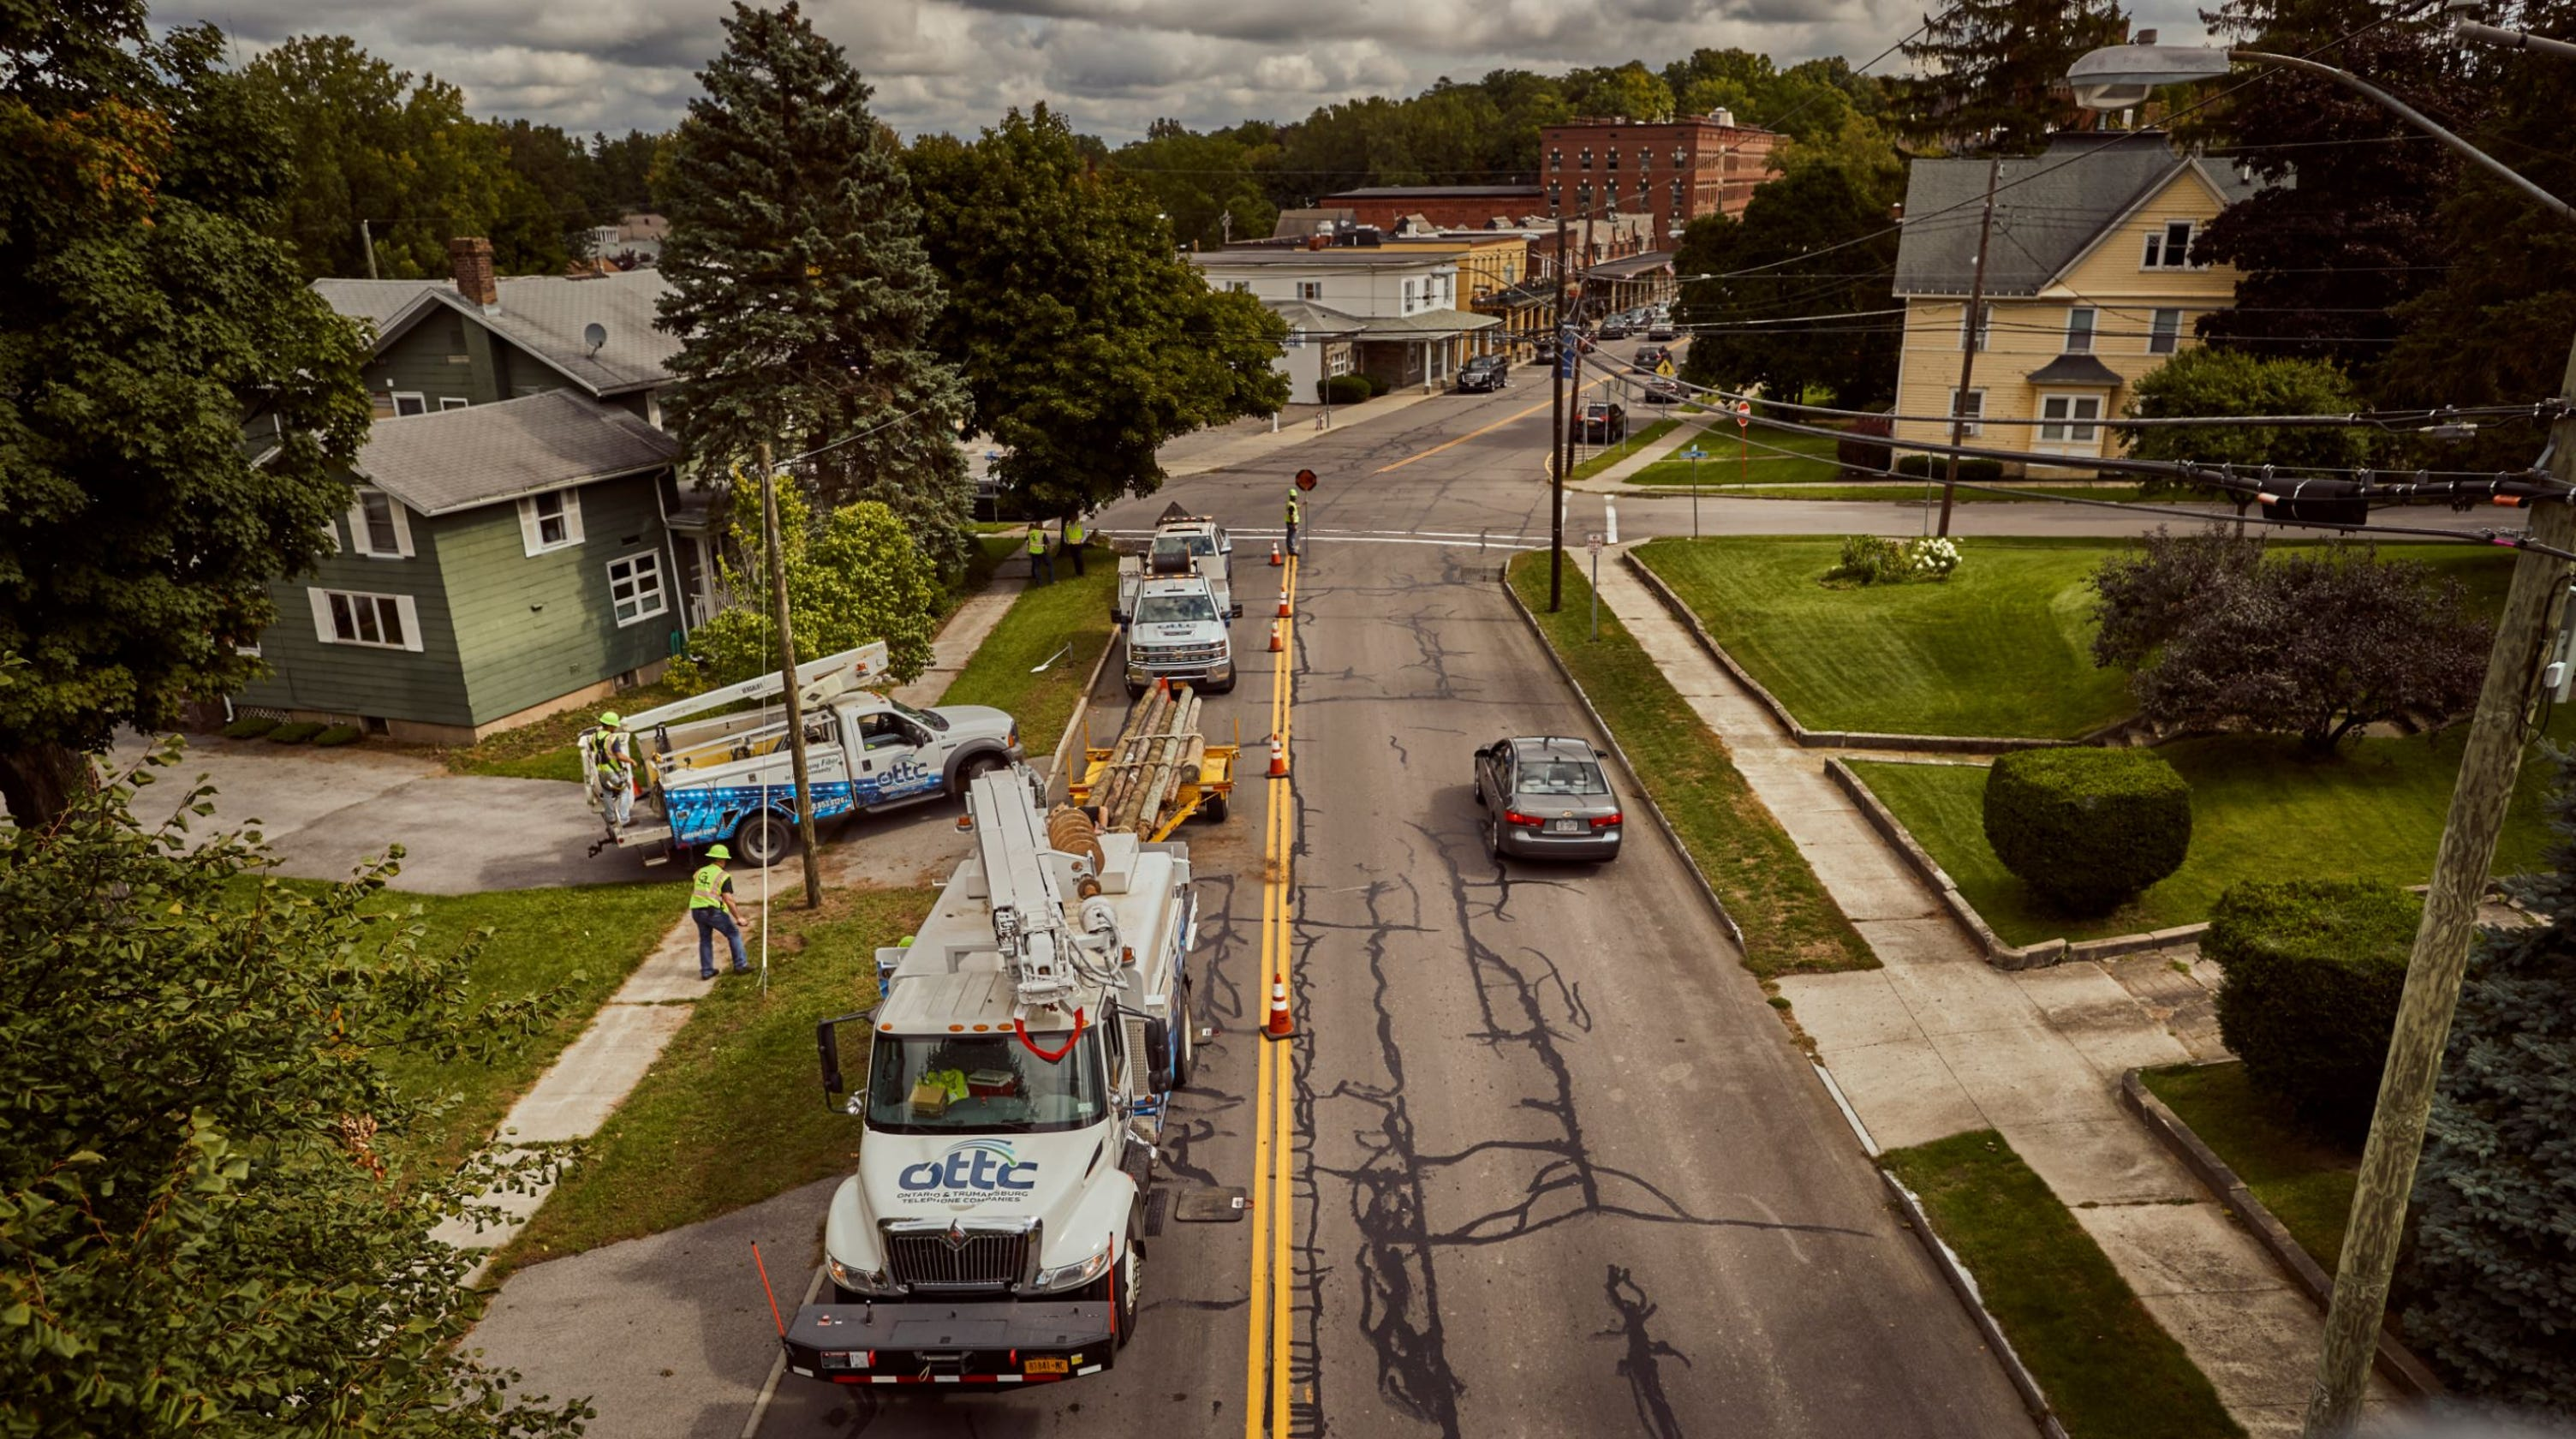 So long Spectrum? Optical fiber network installed in Trumansburg